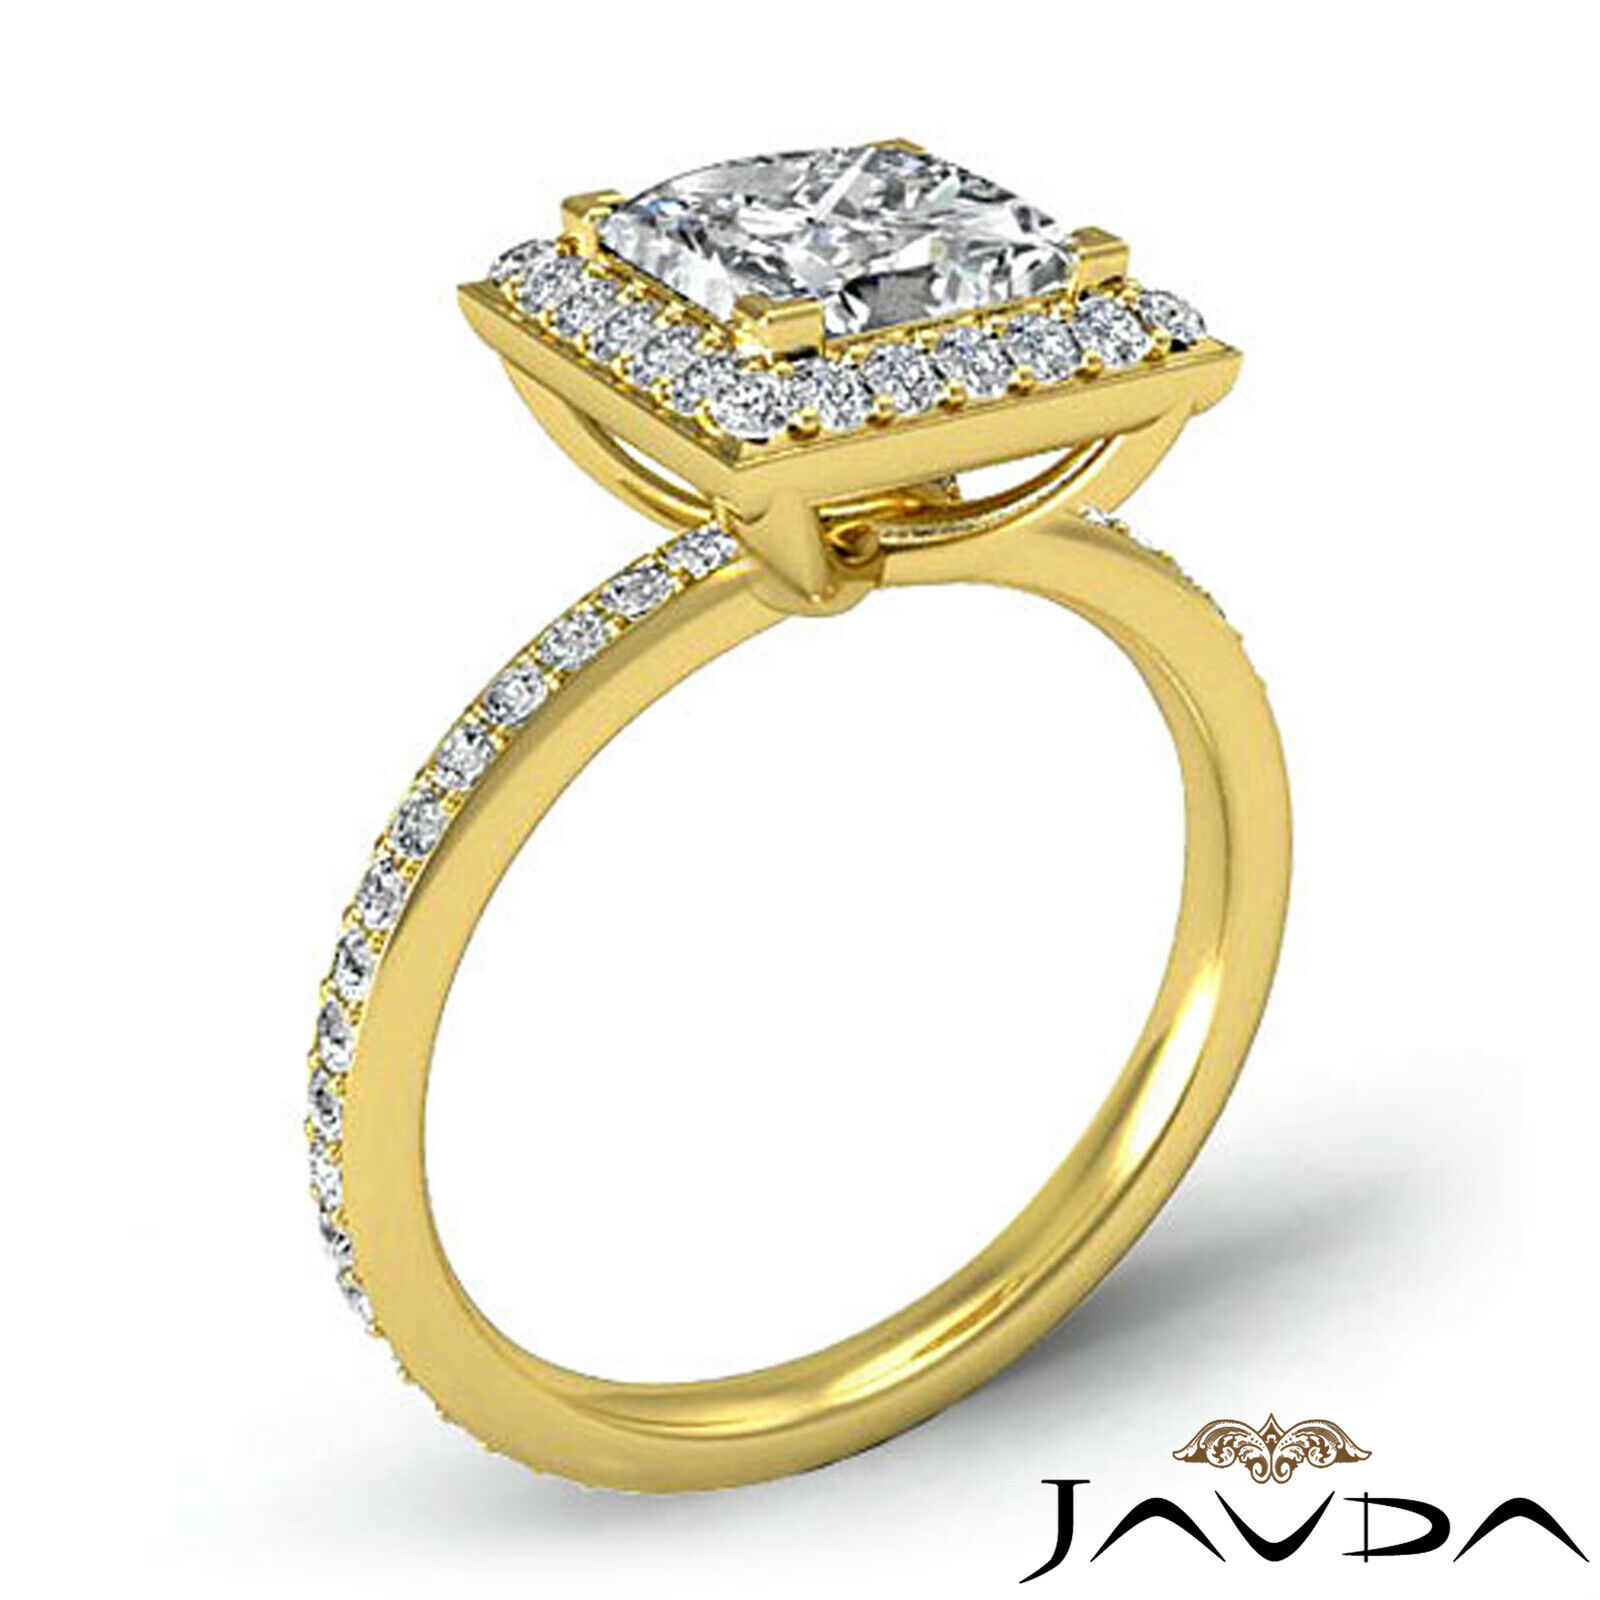 Halo Pave Set Princess Cut Diamond Engagement Ring GIA G Color VS1 Clarity 2.5Ct 8